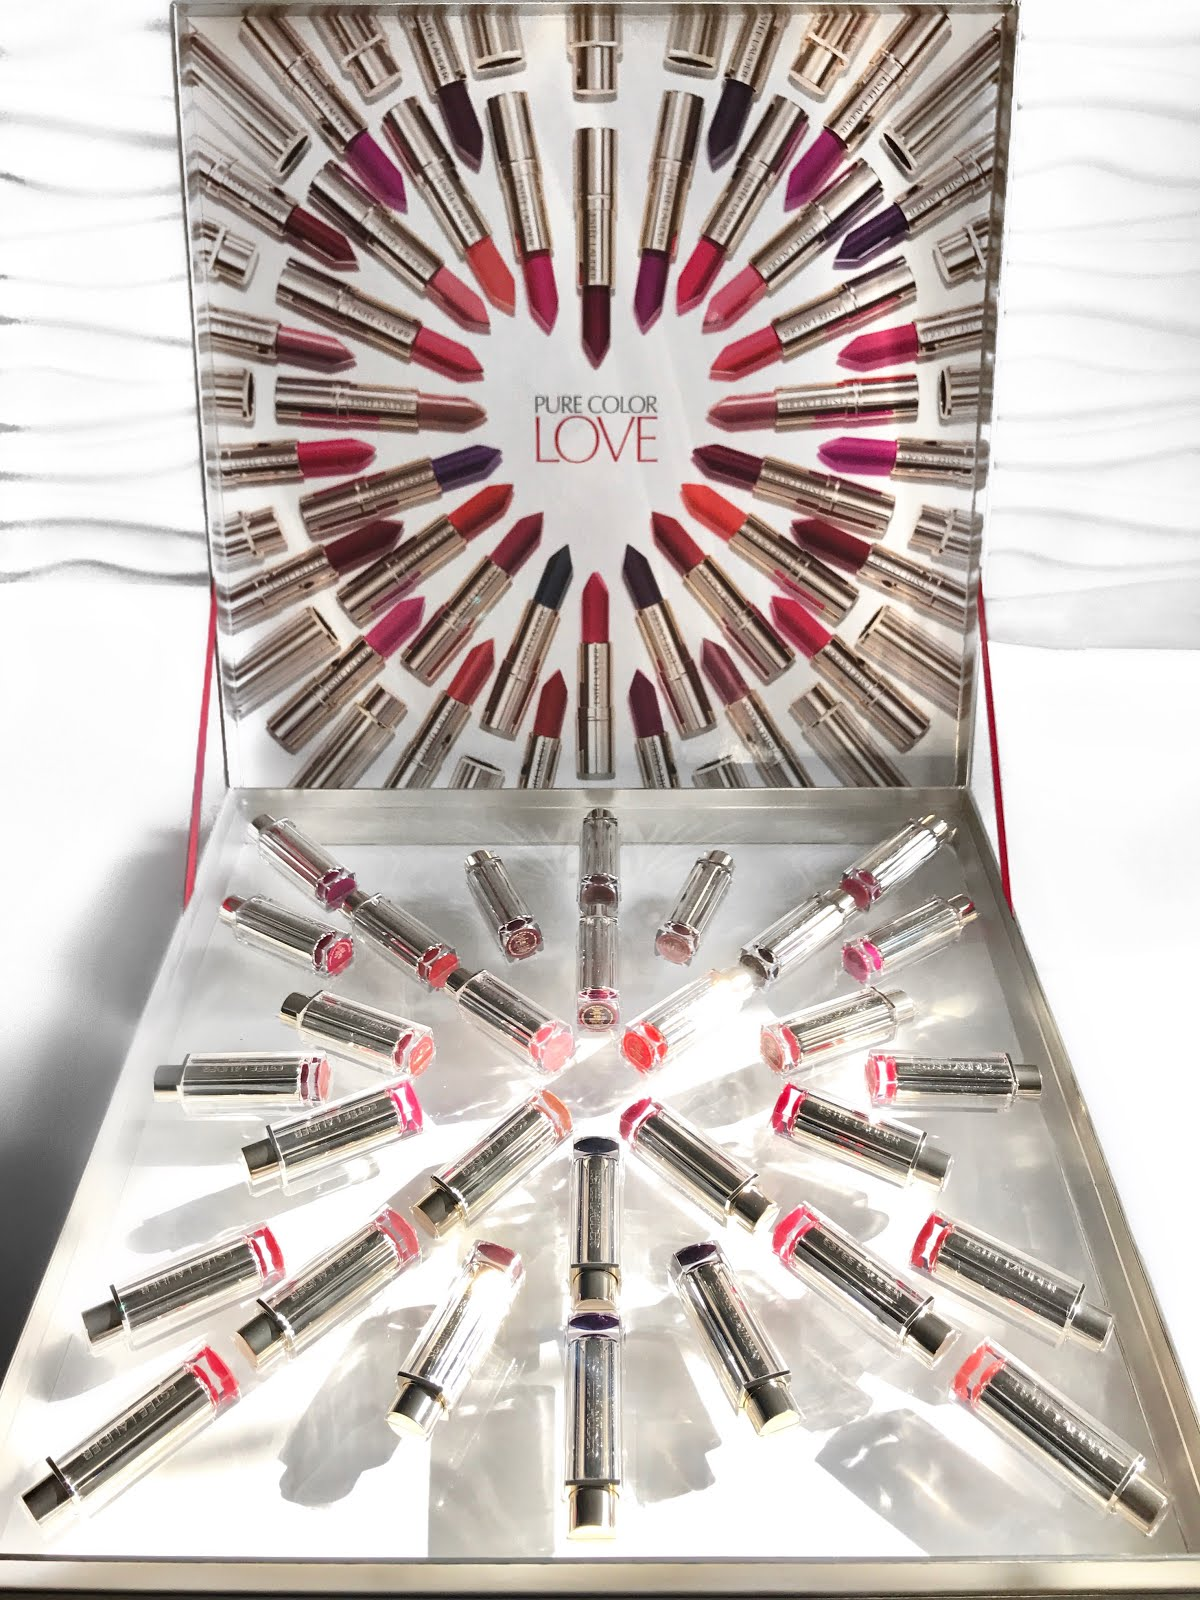 Estée-Lauder-Pure-Color-Love-Lipstick-Collection-Vivi-Brizuela-PinkOrchidMakeup